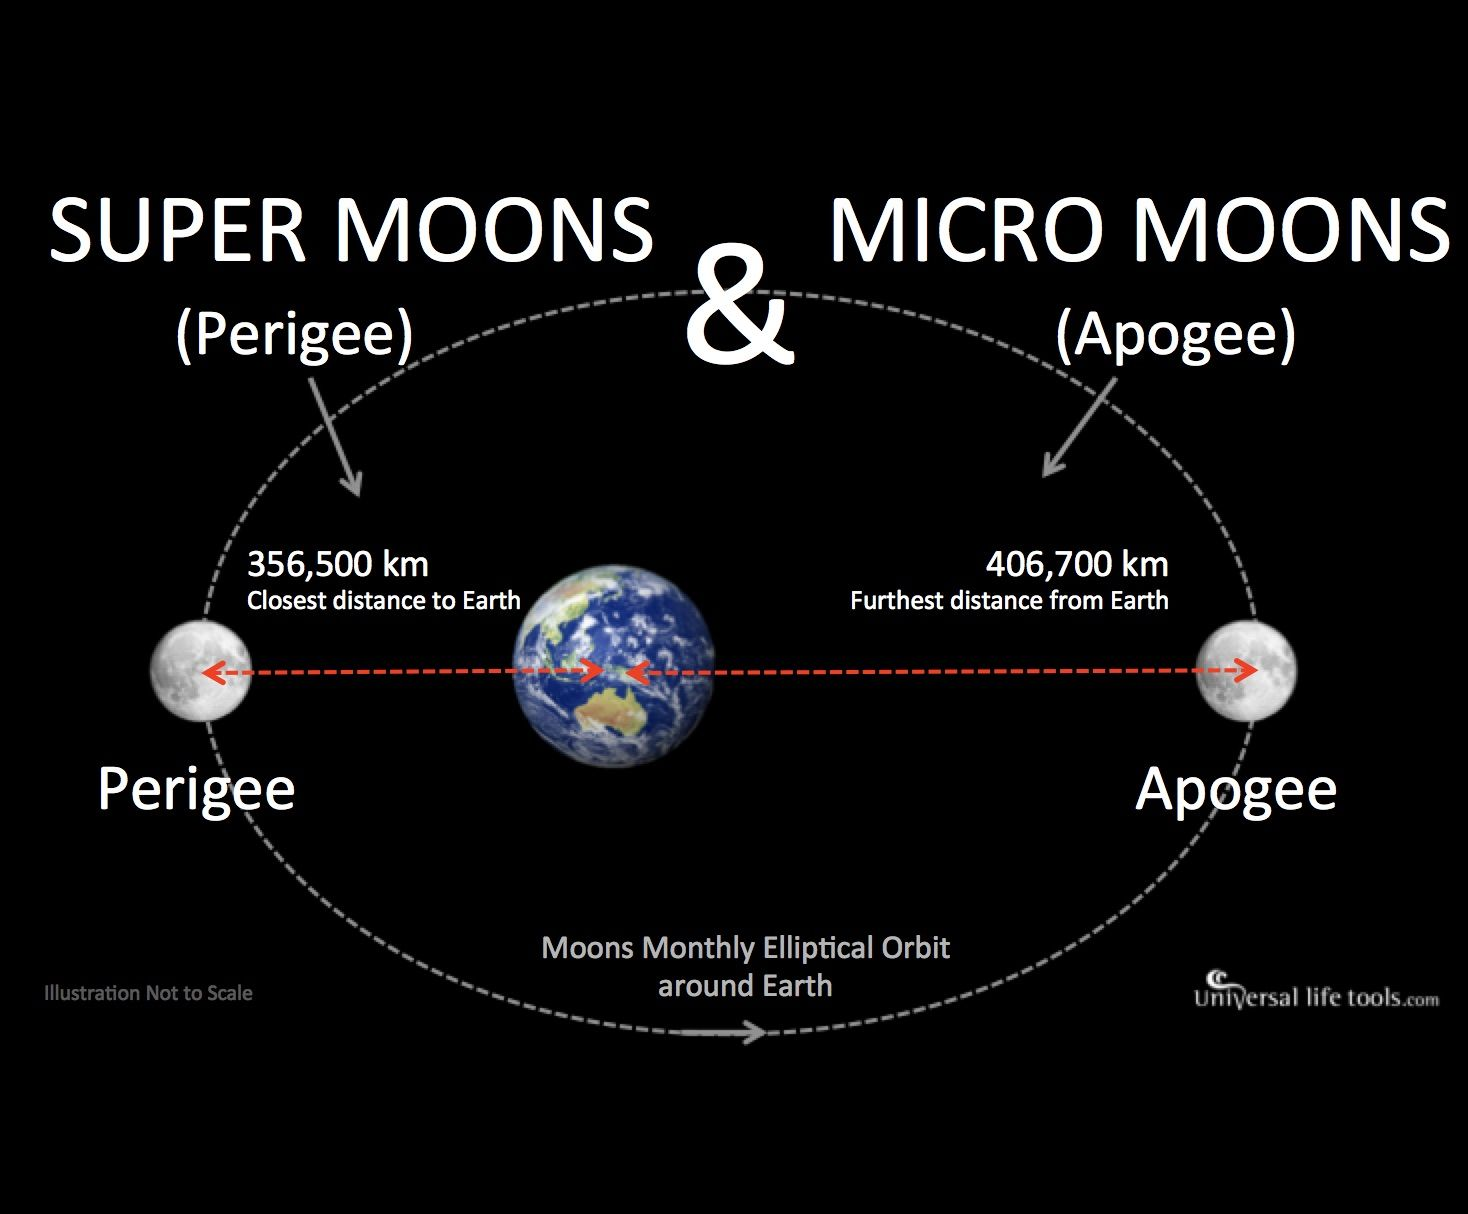 Overview Of The Energy Of Our Super Moons Micro Moons In 2017 Date Times Spiritual Meaning And How To Make The Super Moon Super Moon Meaning Moon Meaning